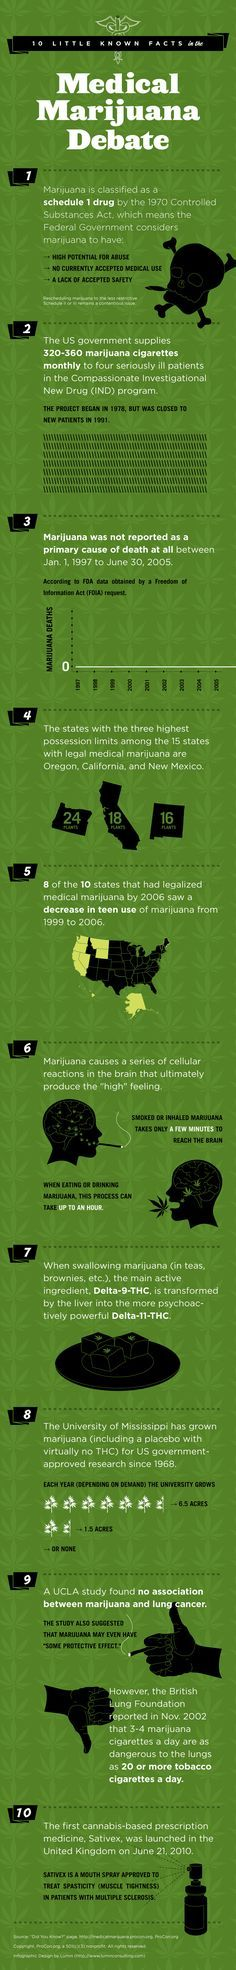 Infographic: 10 Little Known Facts In The Medical Marijuana Debate